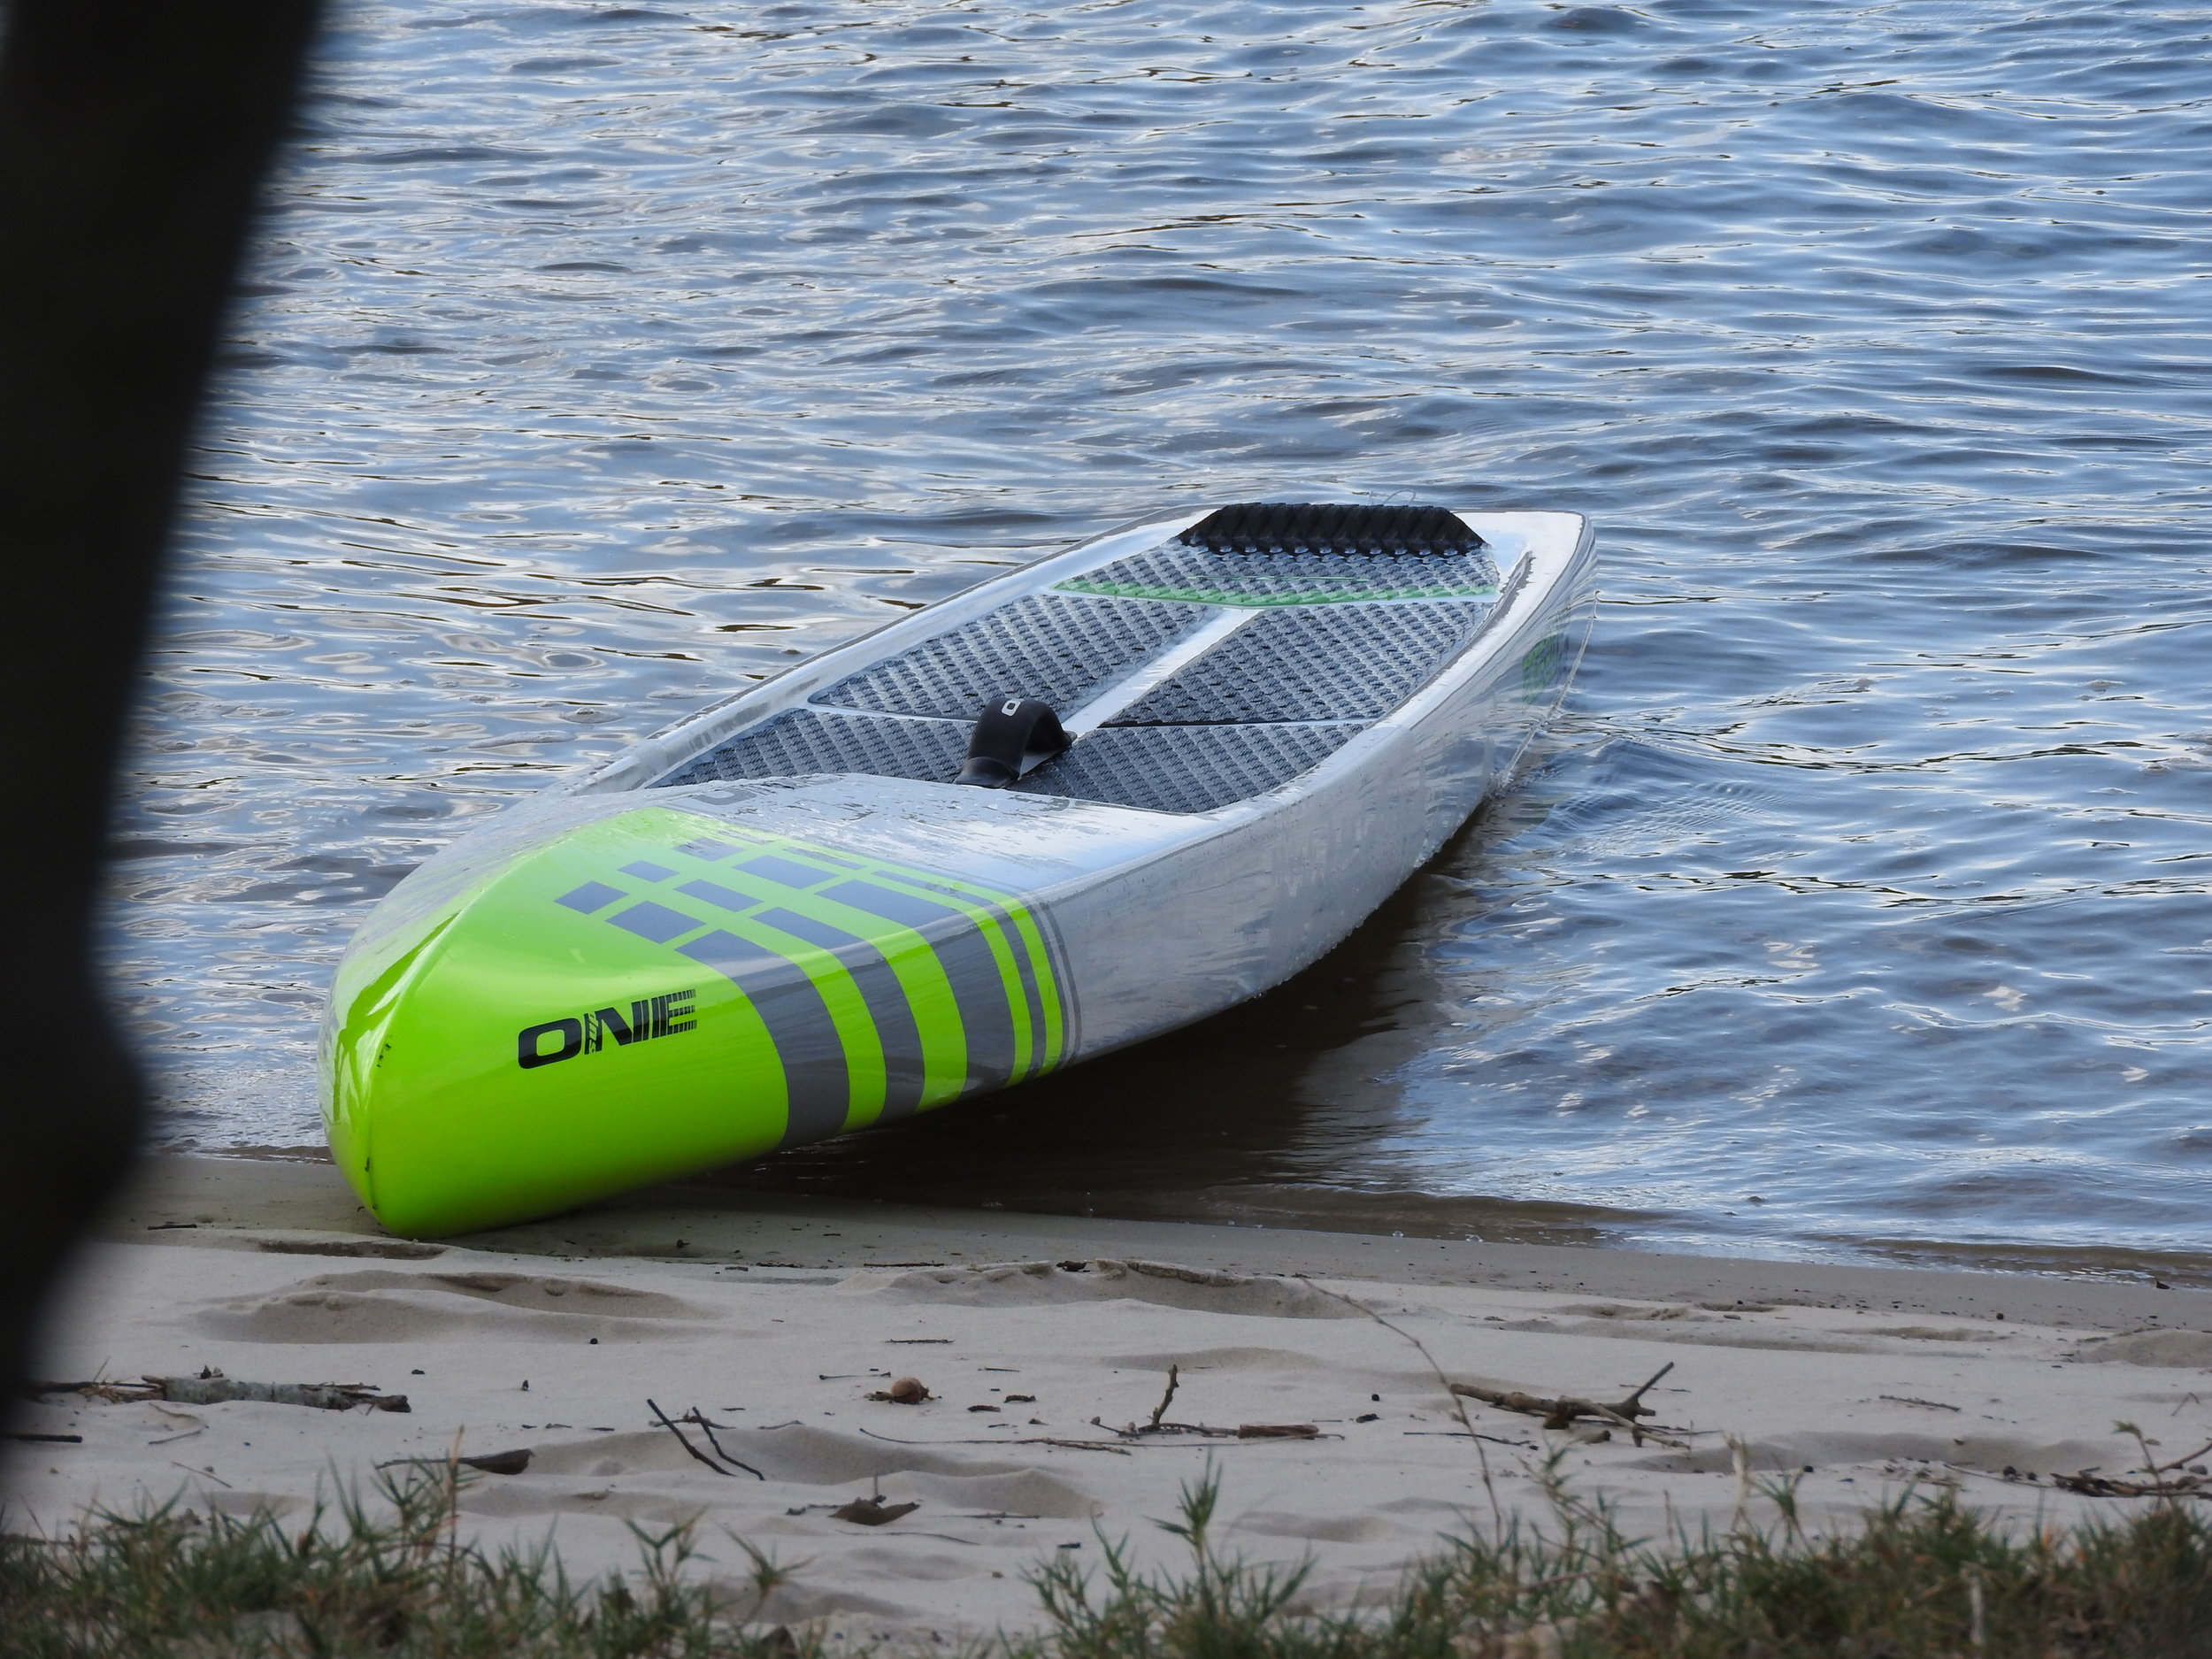 A nice Fast Board - Edge 2.0 is perfect for these waterways